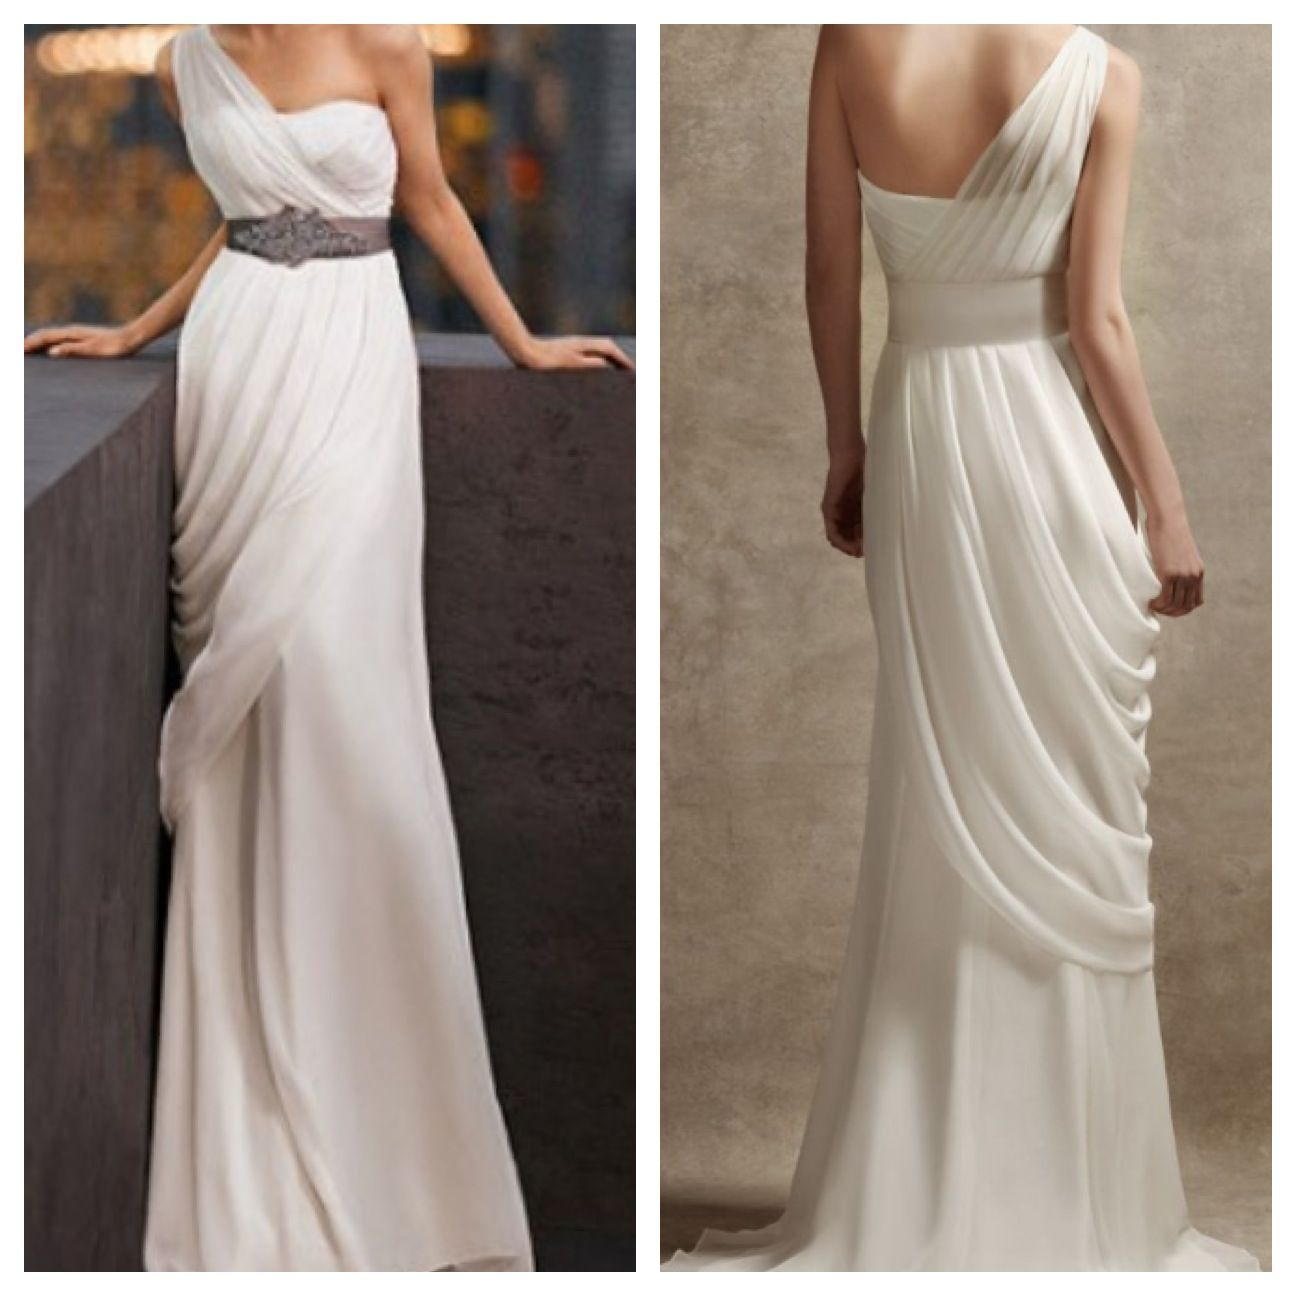 Here\'s another similar greek gown, I prefer the one shoulder look ...